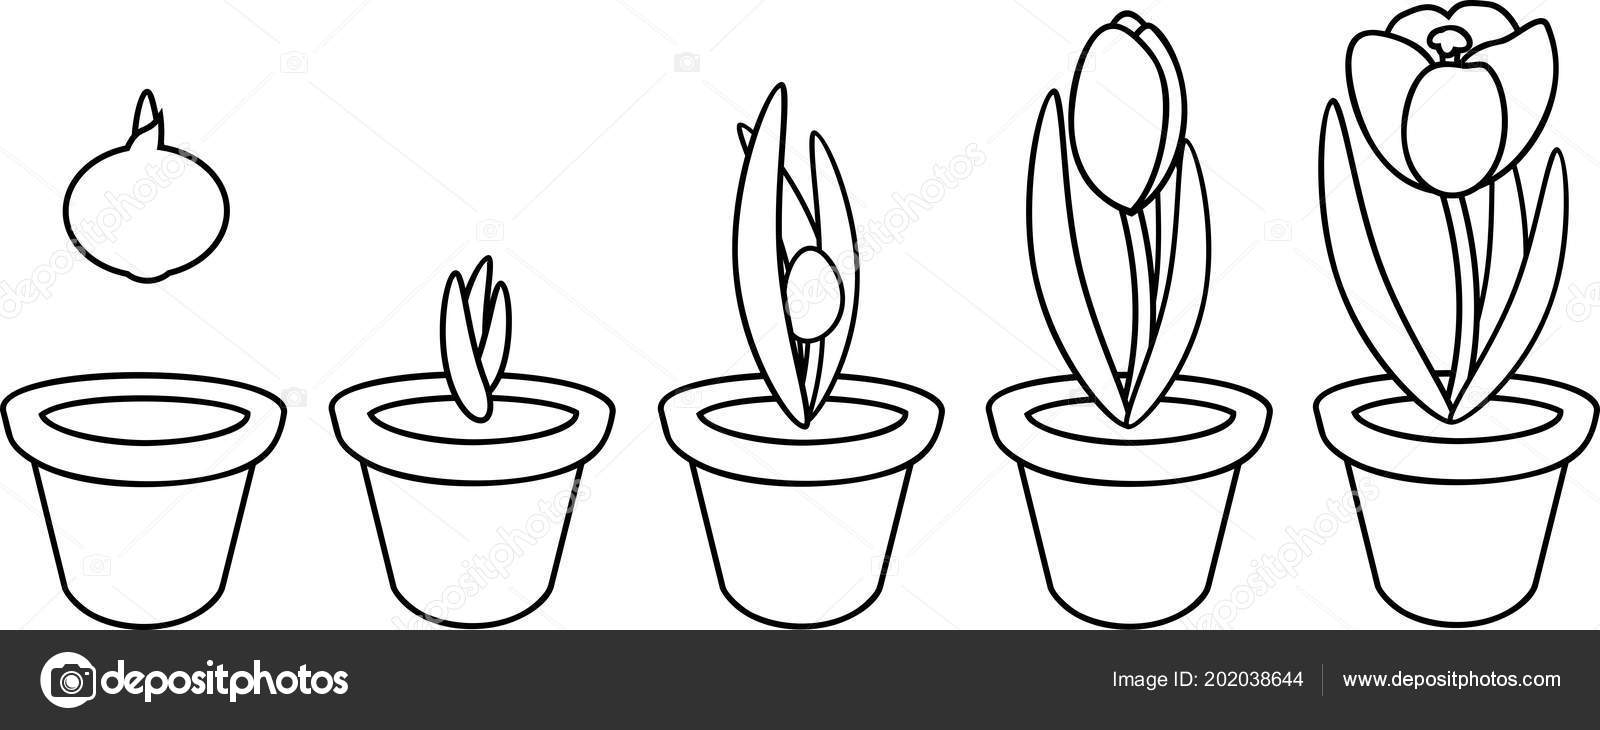 Coloring Page Crocus Life Cycle Stages Growth Planting